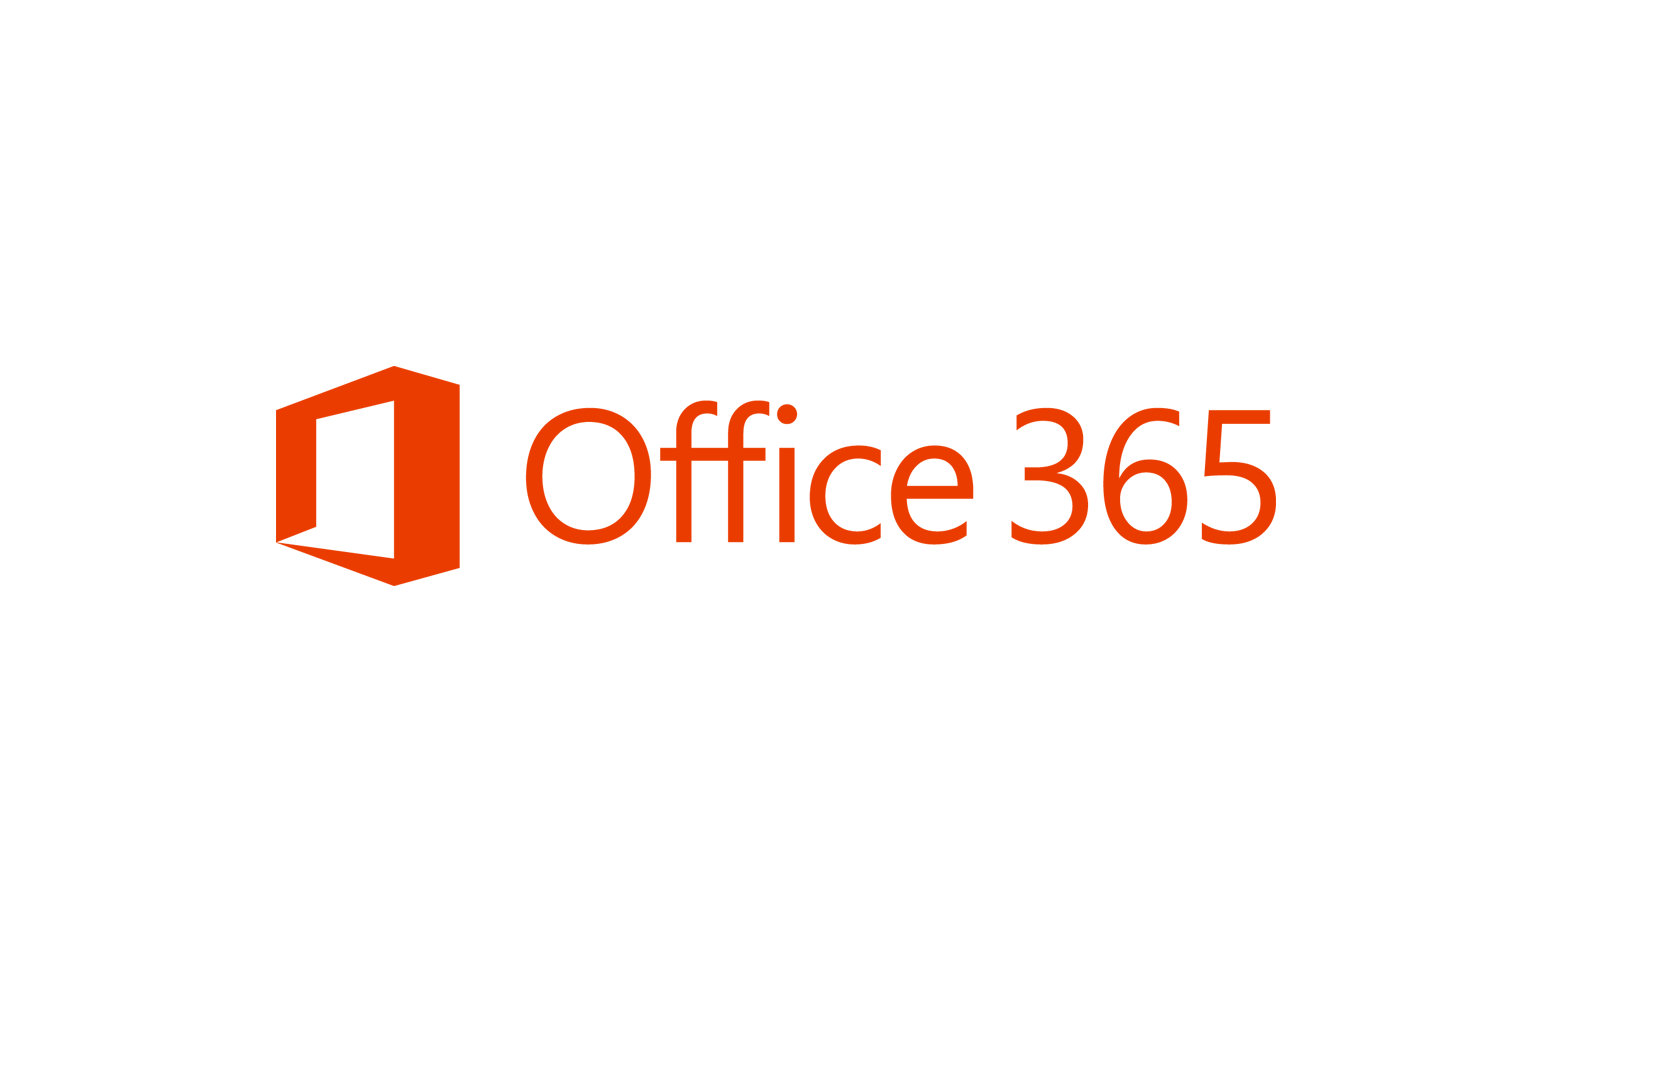 Office 365 logo icon #12633 - Free Icons and PNG Backgrounds